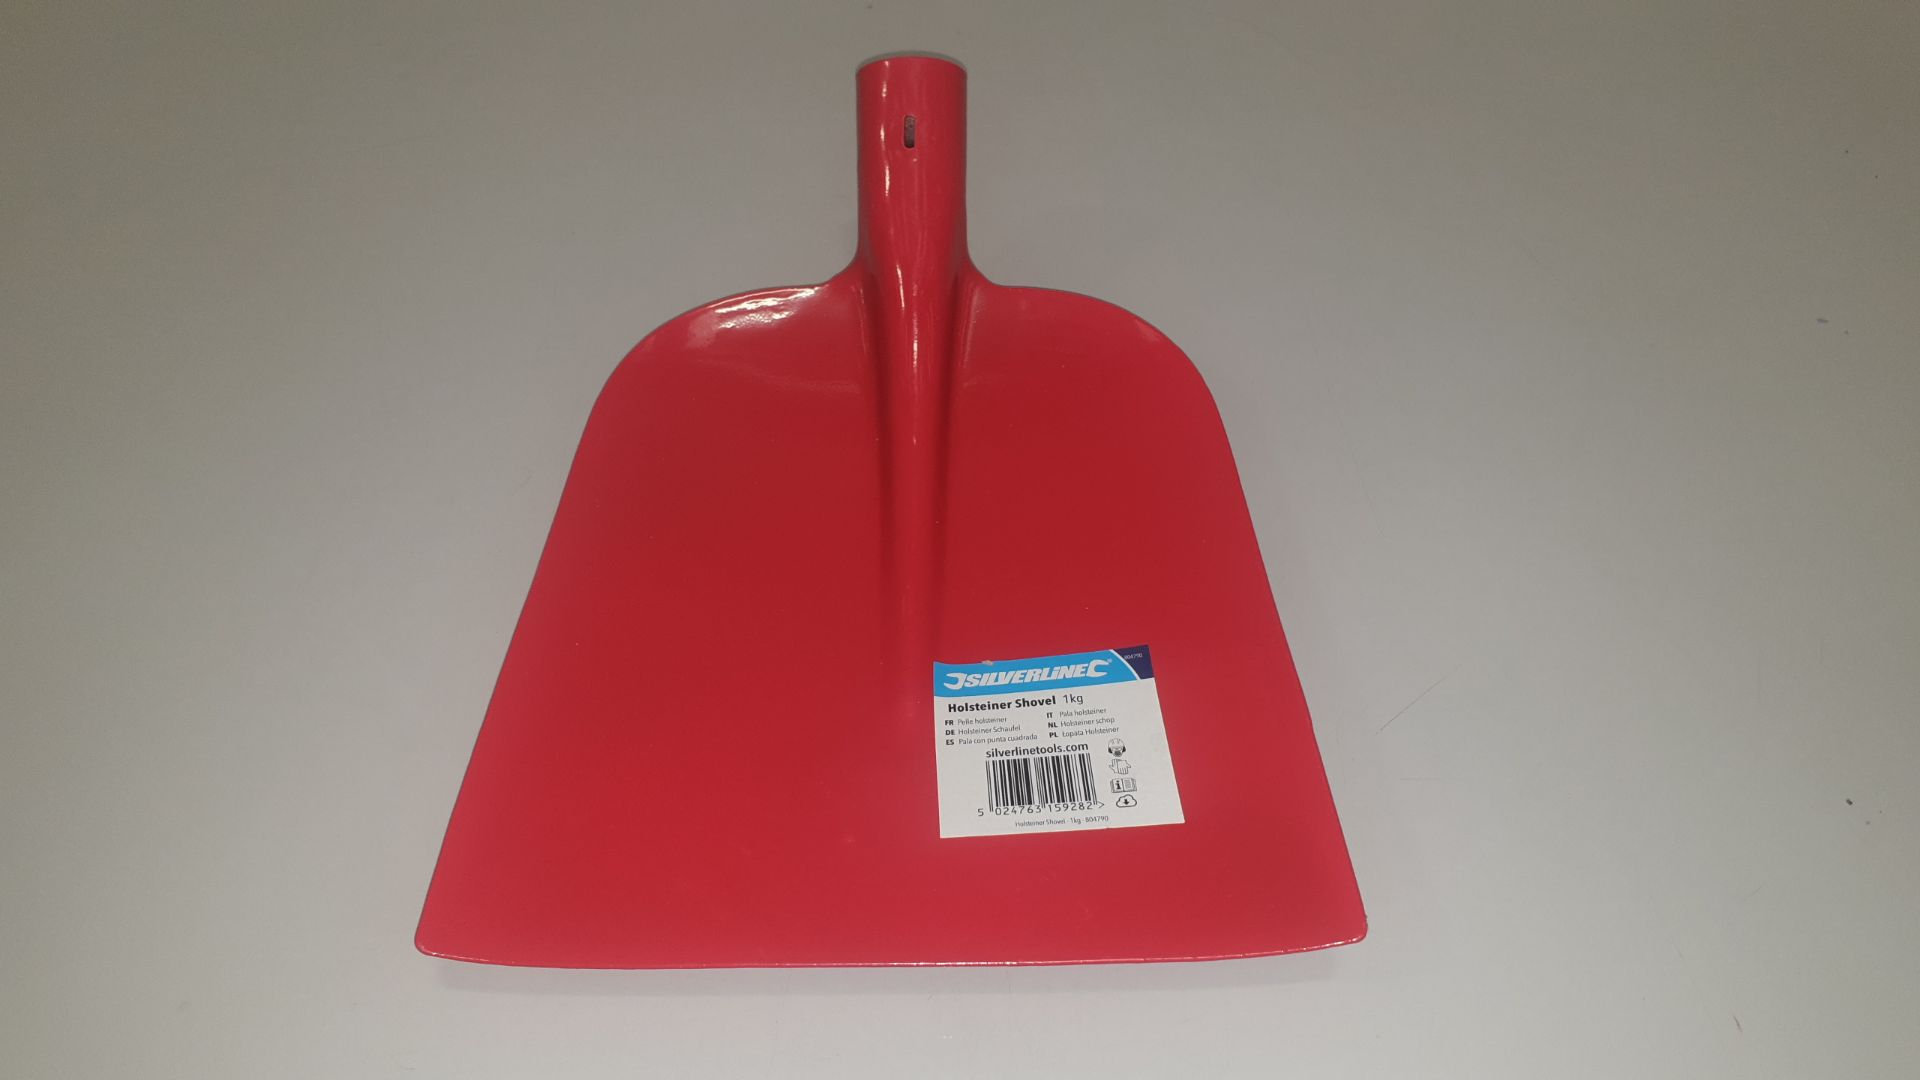 Lot 320 - 60 X BRAND NEW SILVERLINE CONTRACTORS HOLSTEINERSHOVEL 1KG (PROD CODE 804790) TRADE PRICE £5.06 EACH